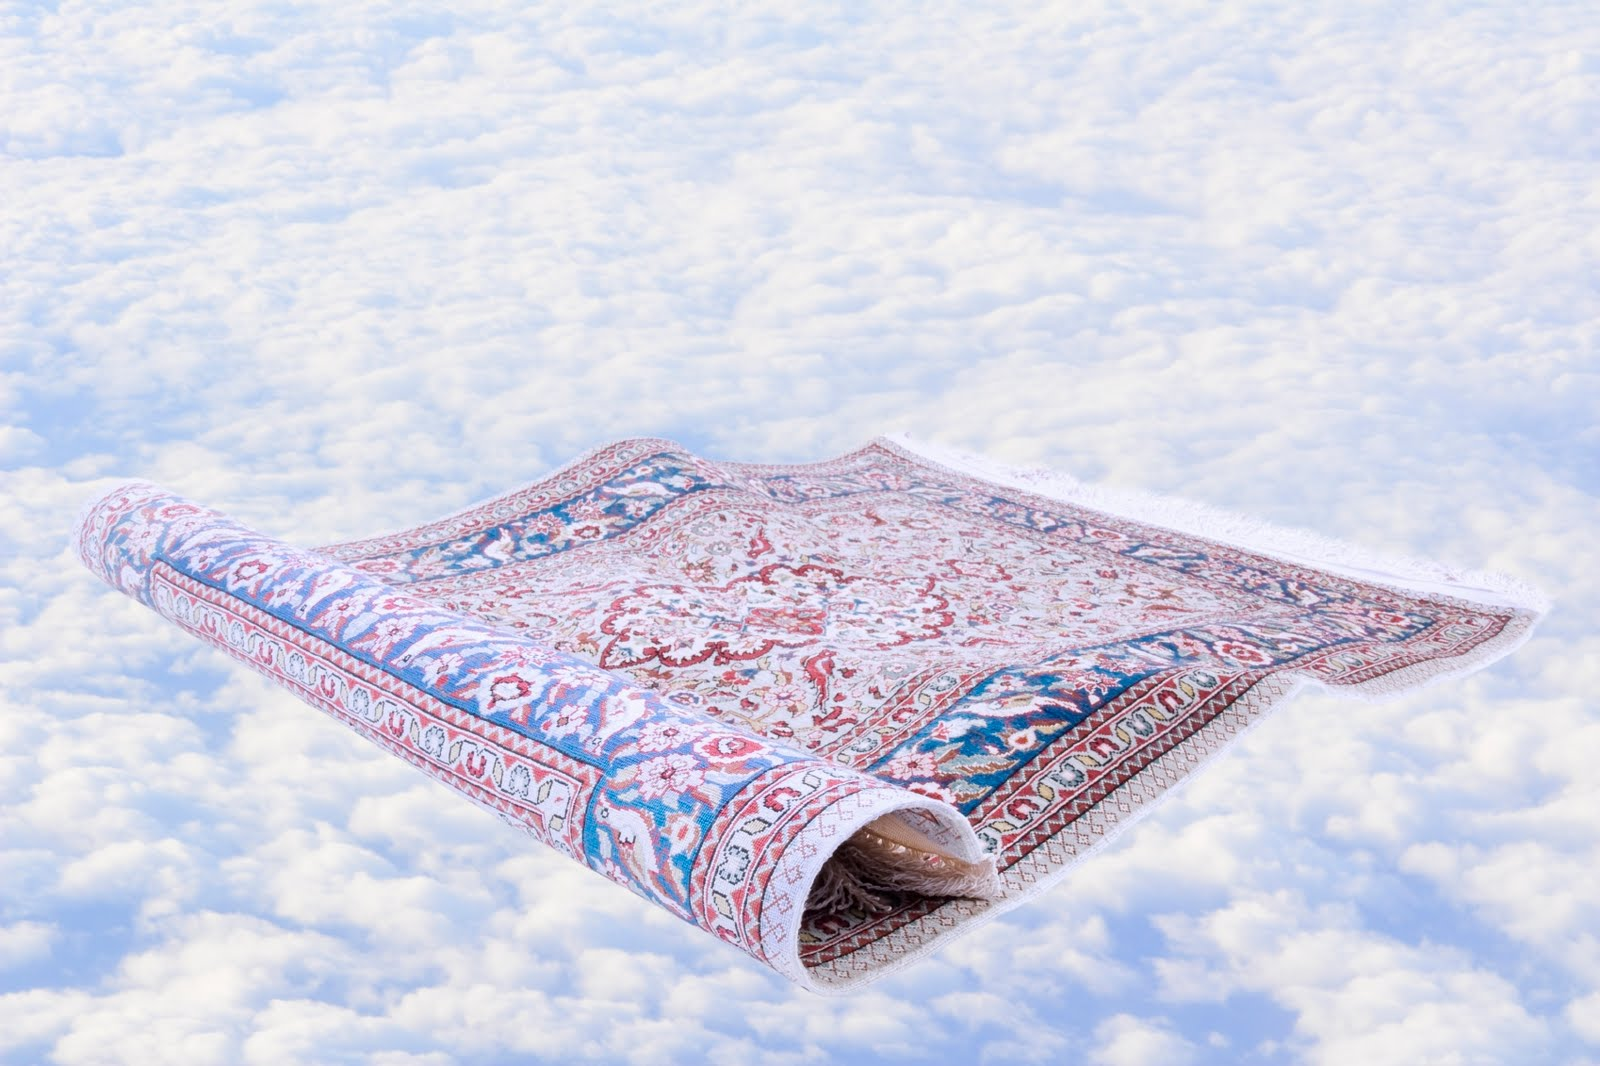 Flying Carpet The Fairy Tale Cupboard: Free Public Lecture By Marina Warner